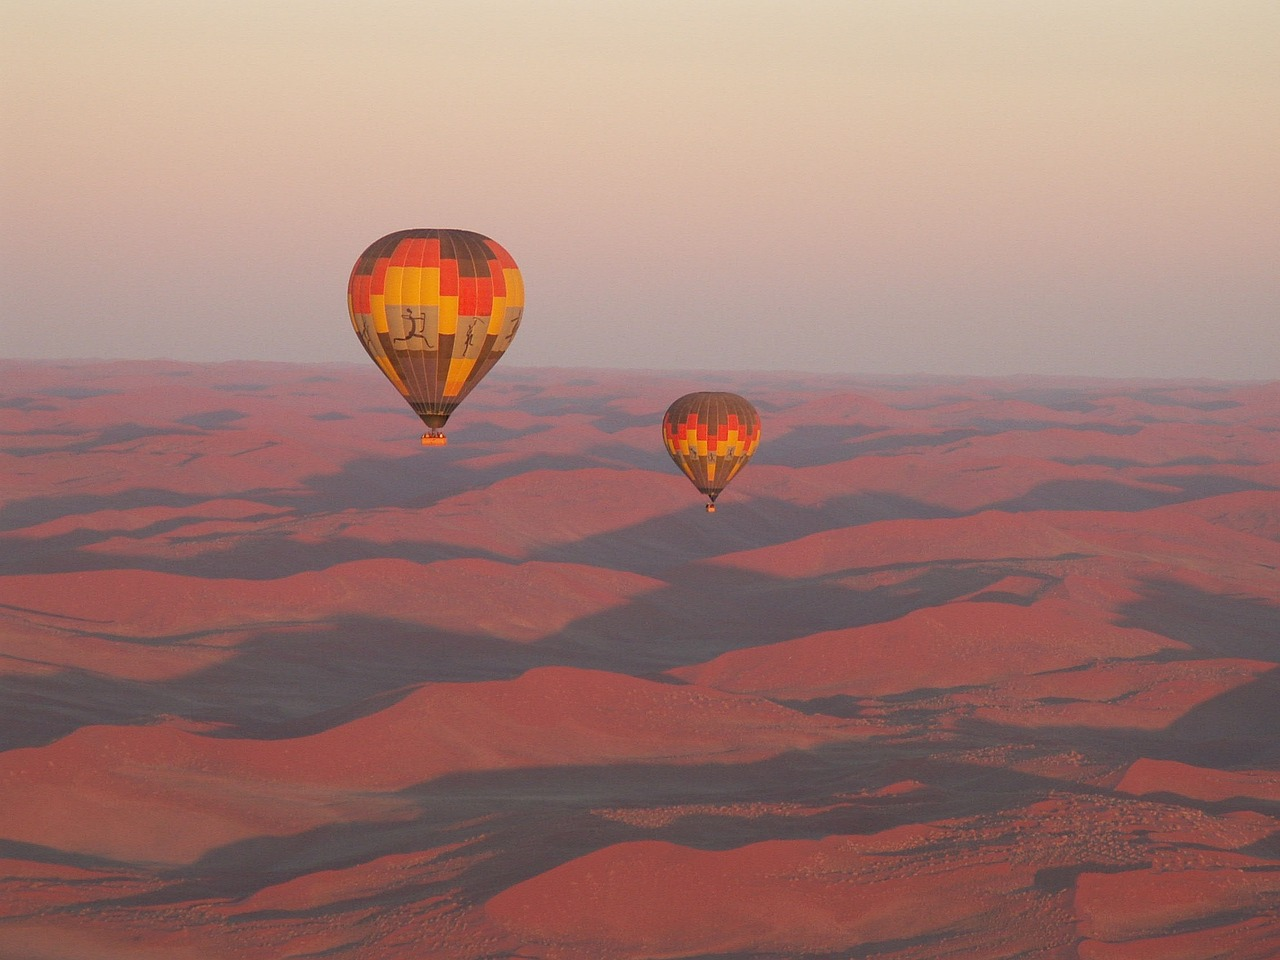 Hot Air Balloon in Namibia